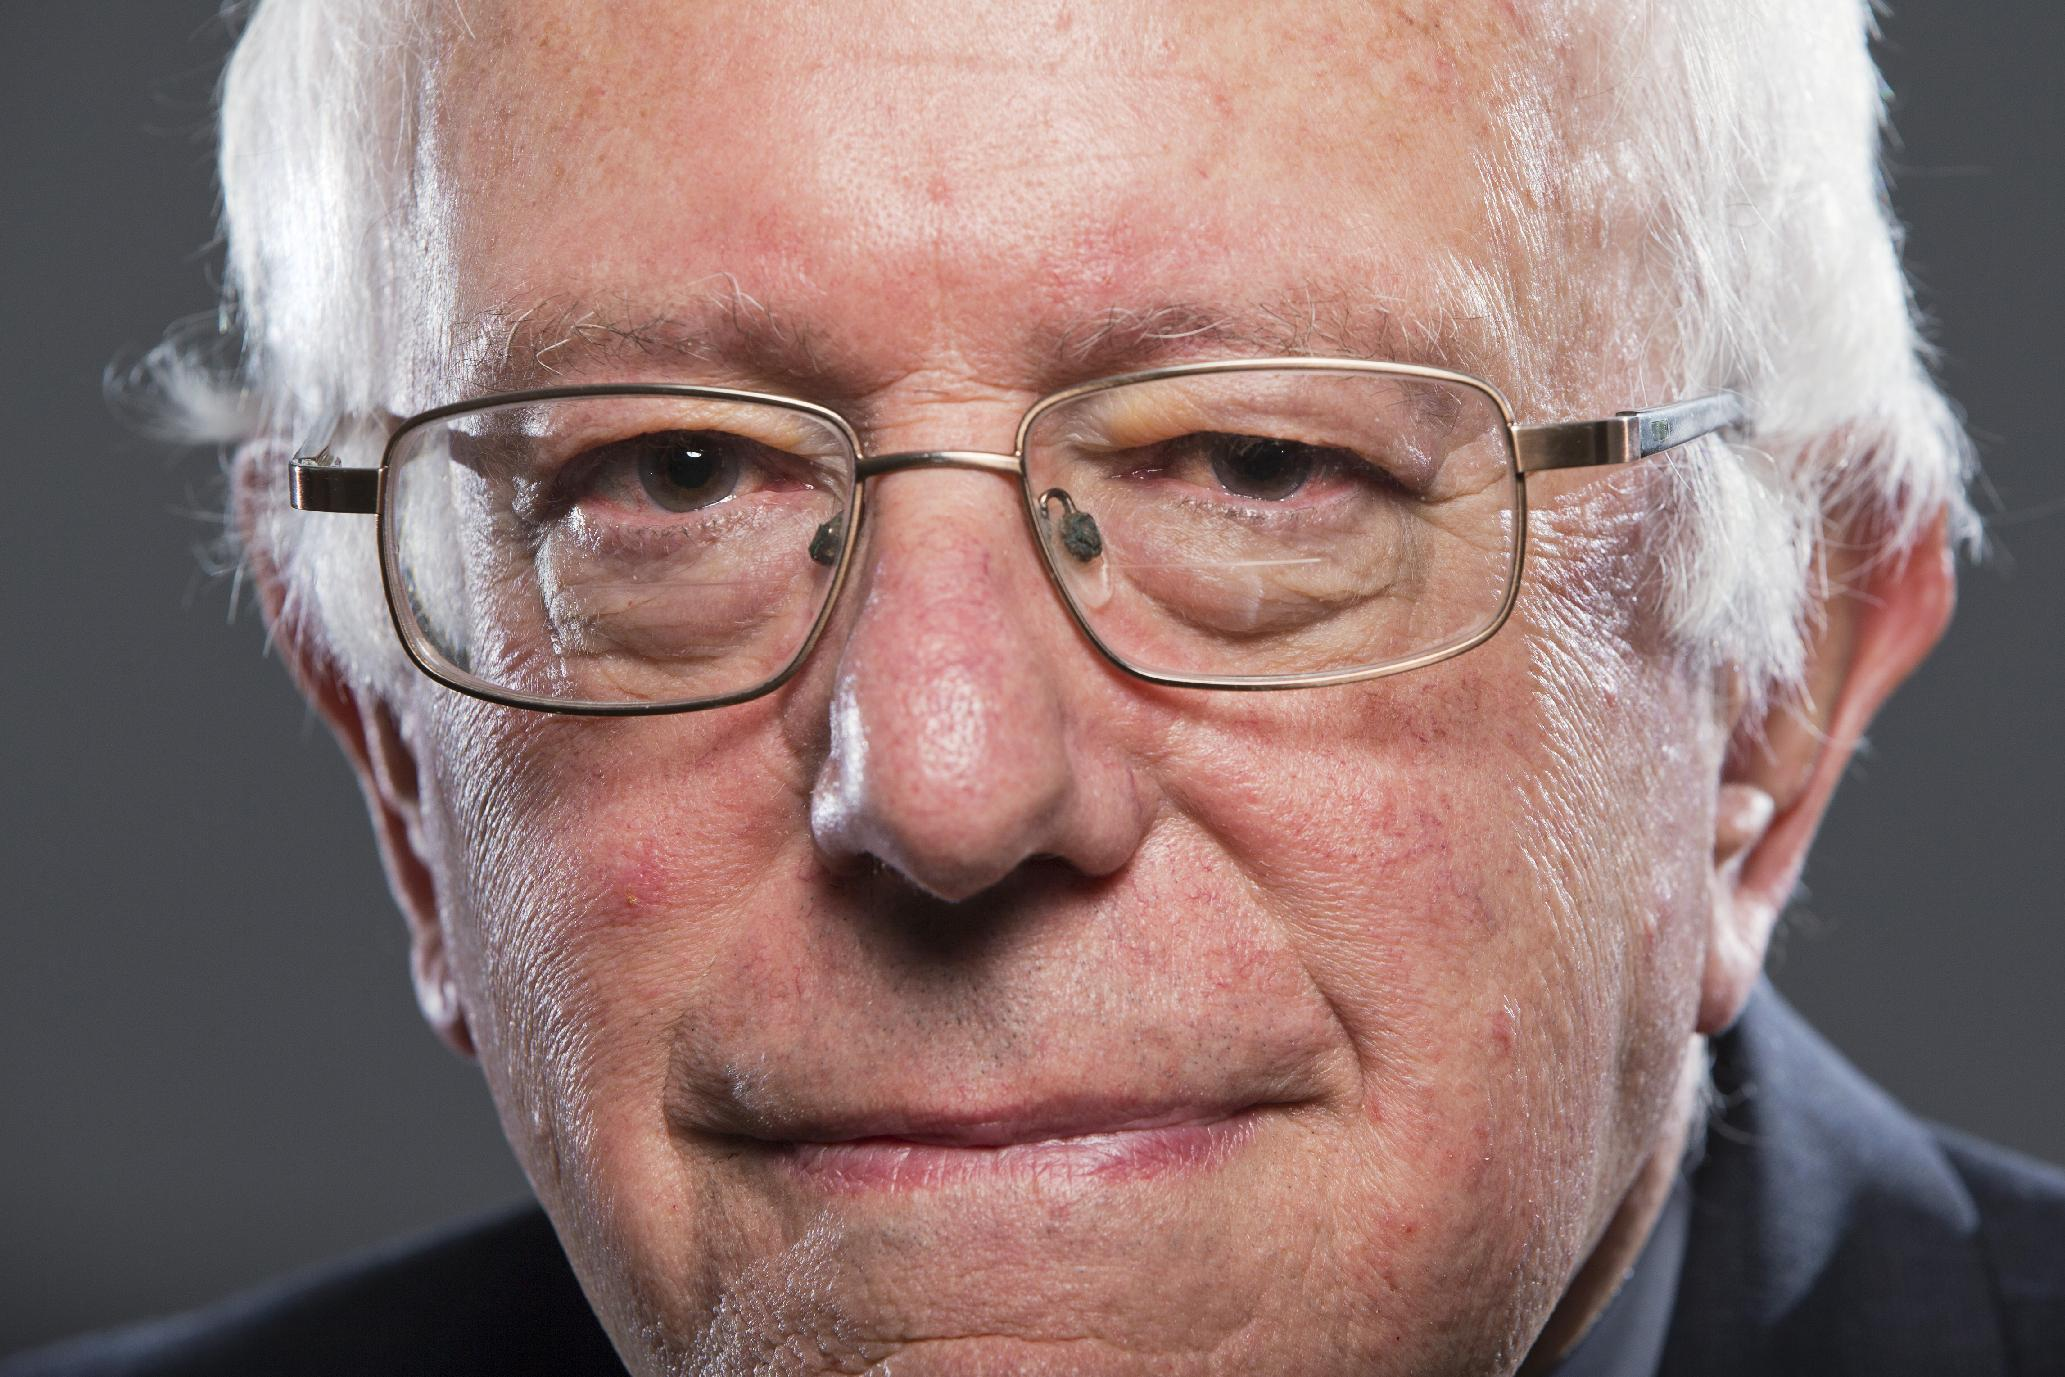 Launching campaign, Sanders appeals to party's Warren wing